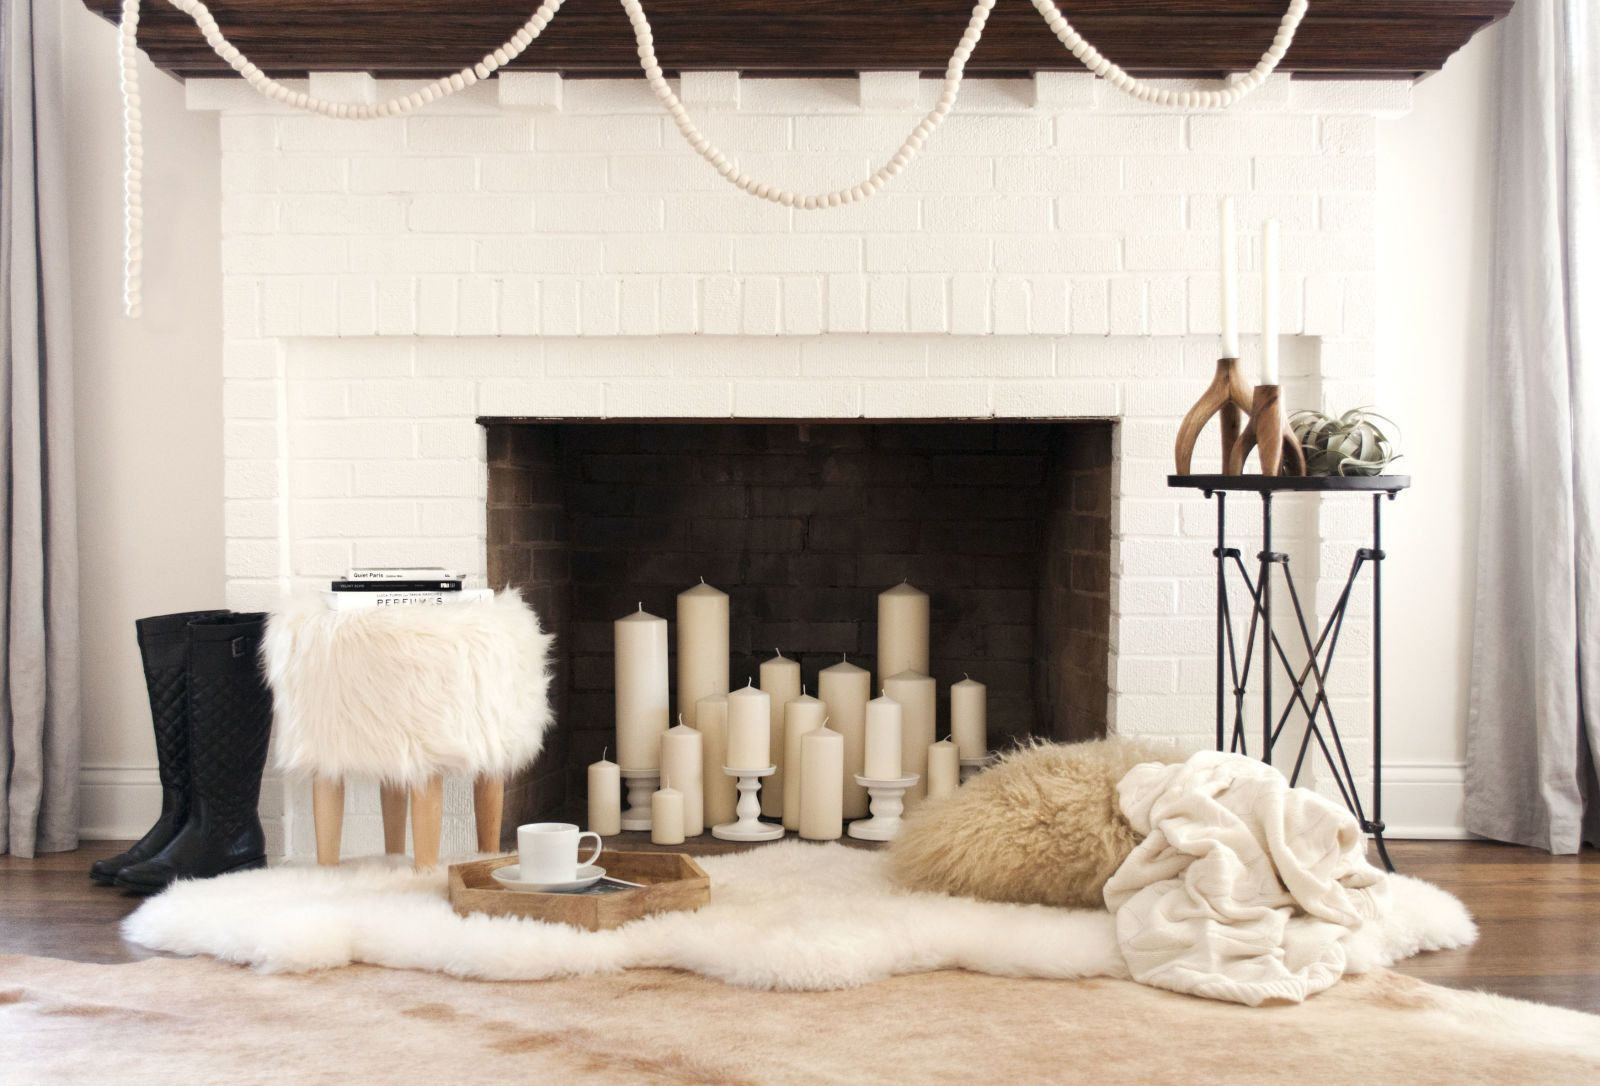 12 Ideas For Decorating A Nonworking Fireplace Empty Fireplace Ideas Living Room With Fireplace Fireplace Decor